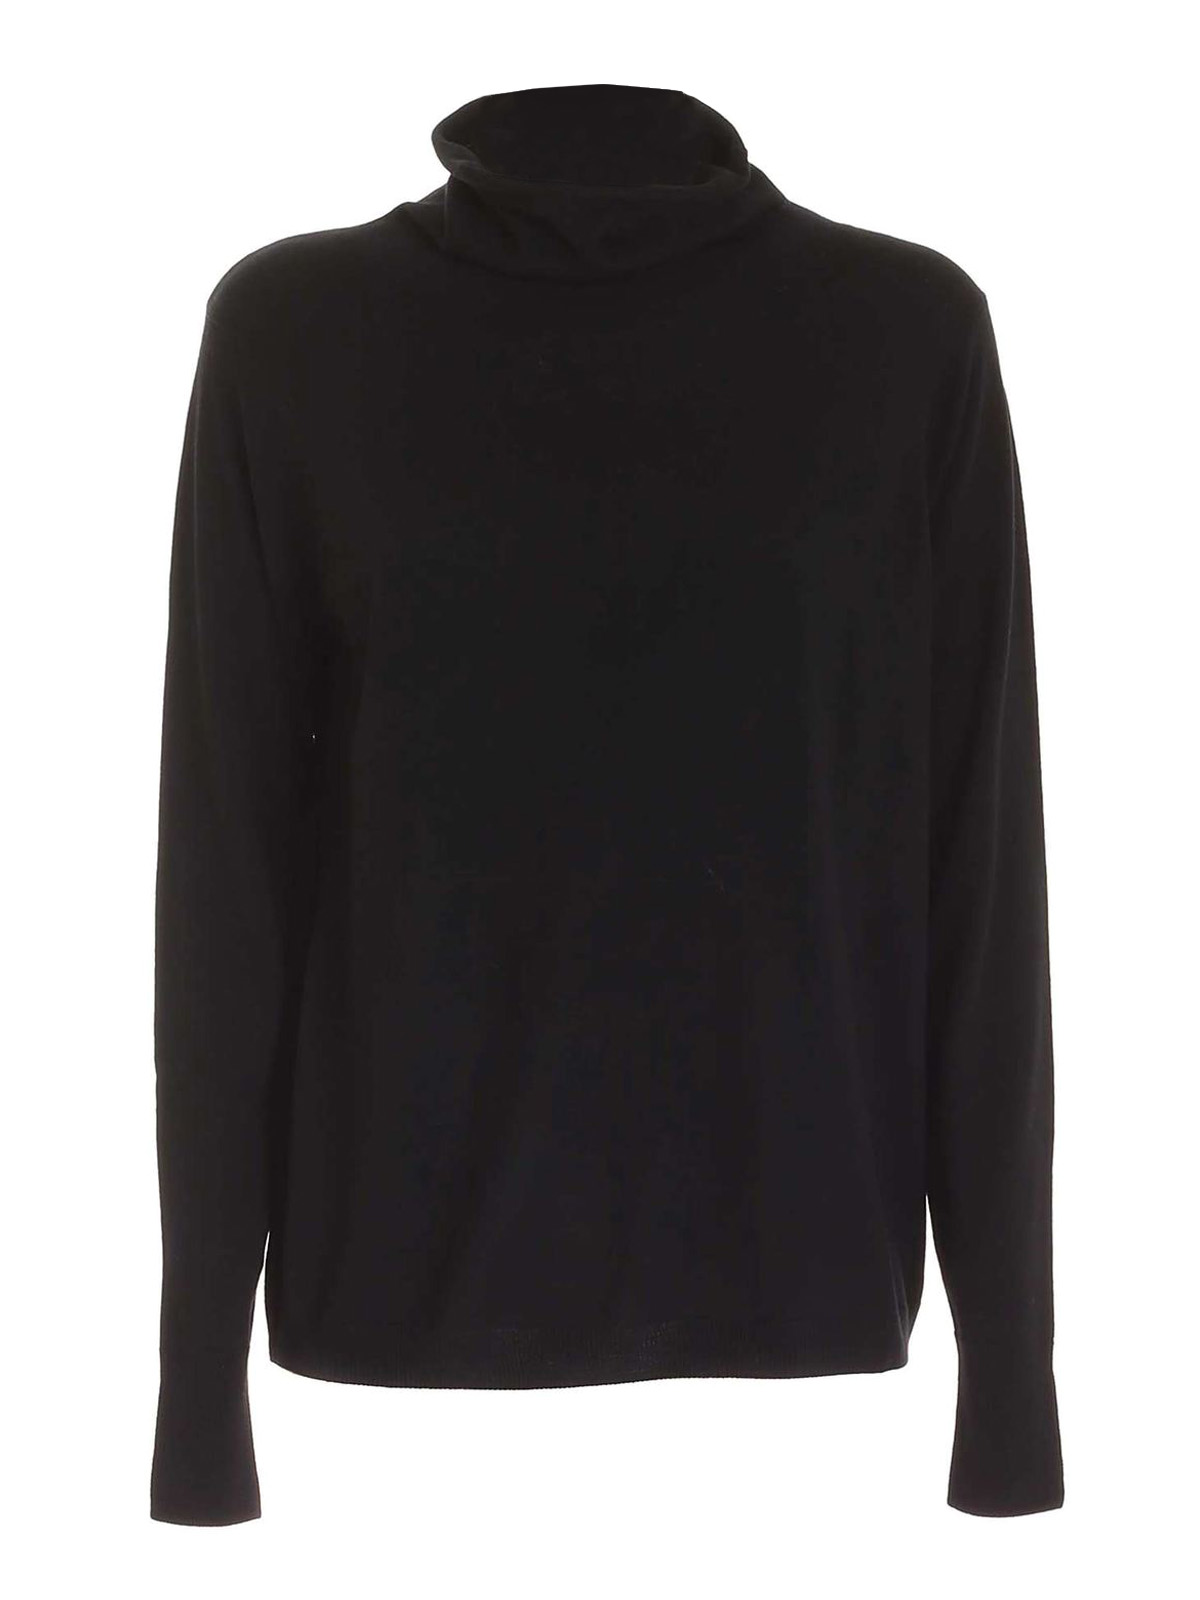 Aspesi WOOL TURTLENECK IN BLACK